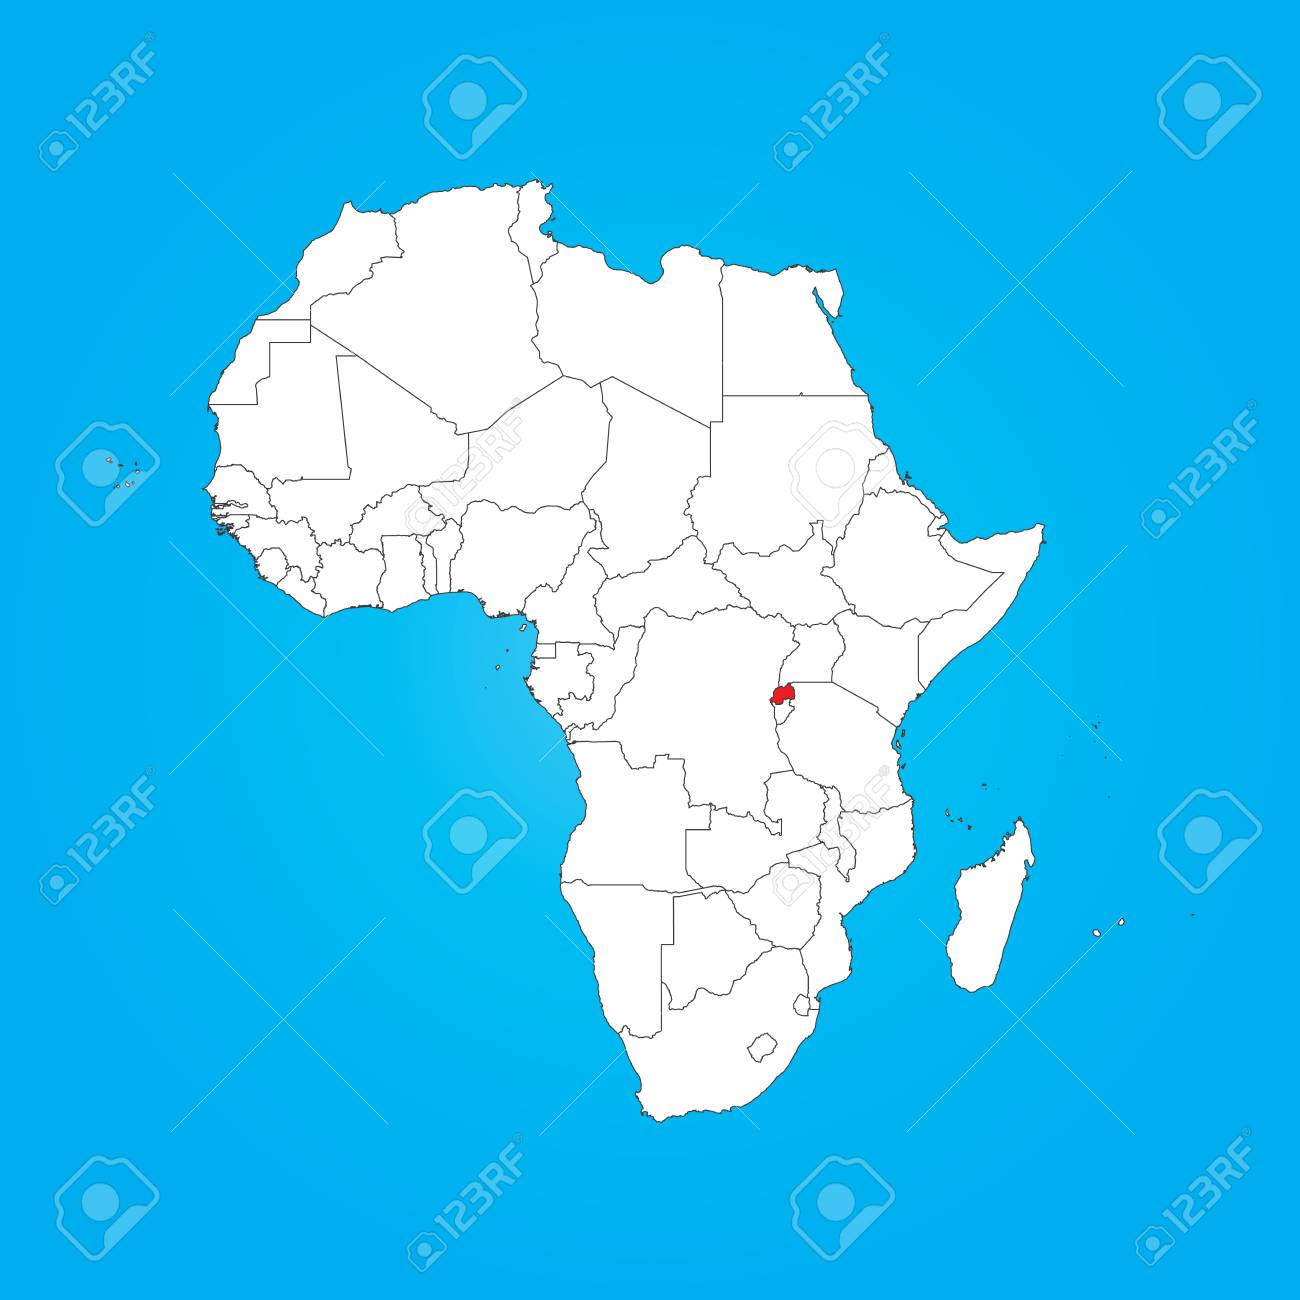 Africa Map Showing Rwanda.A Map Of Africa With A Selected Country Of Rwanda